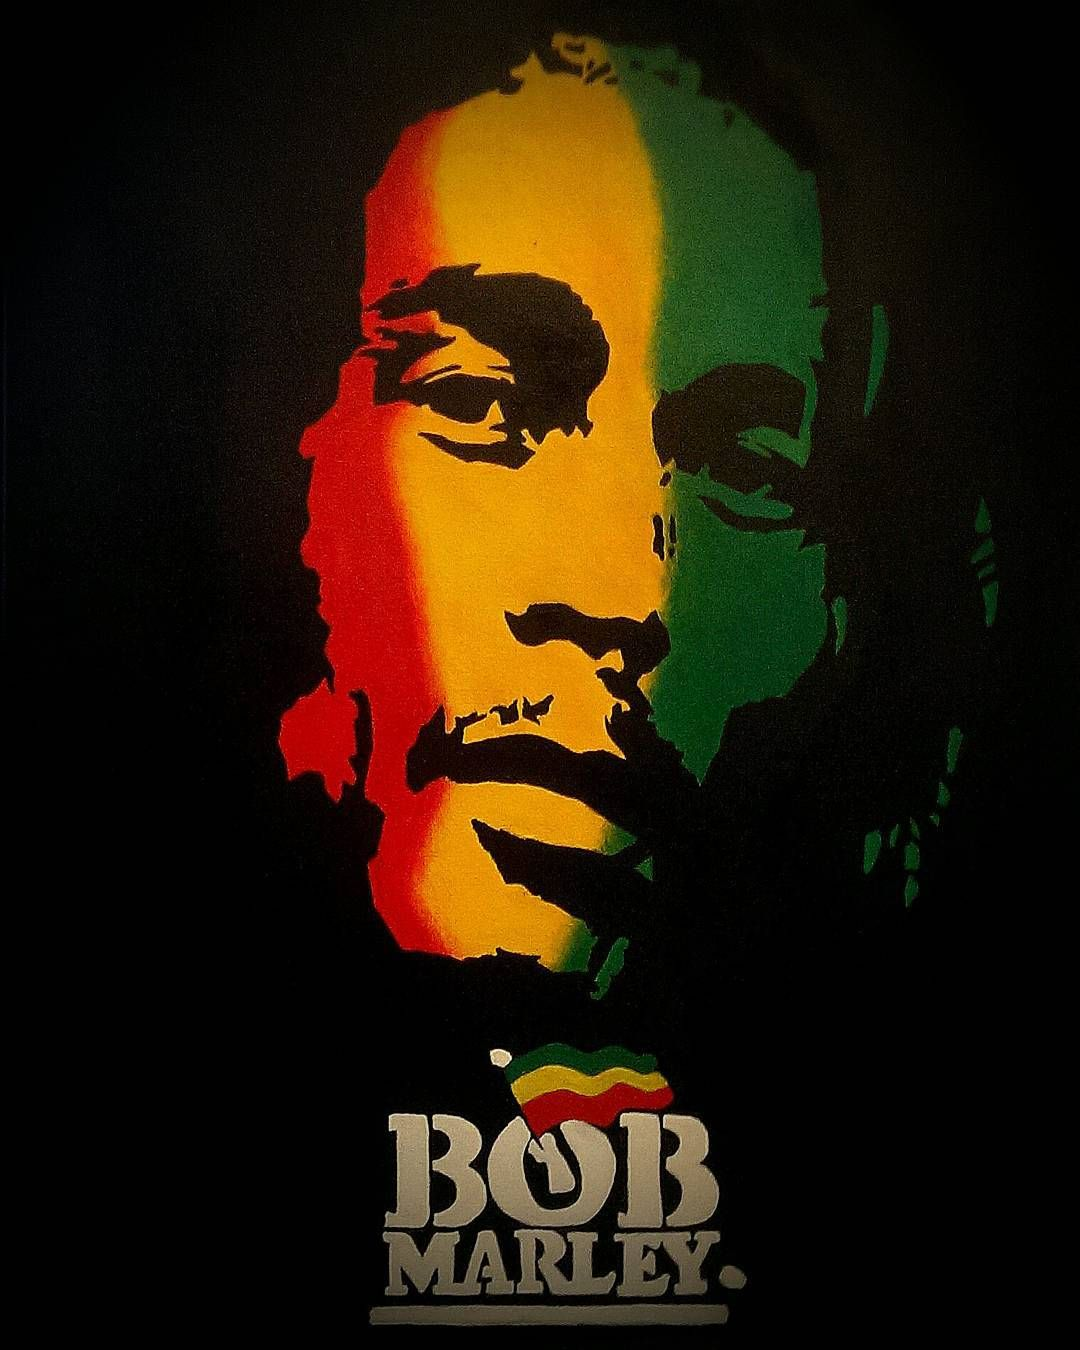 Bob marley more fantastic posters prints pictures and for Cuadros bob marley